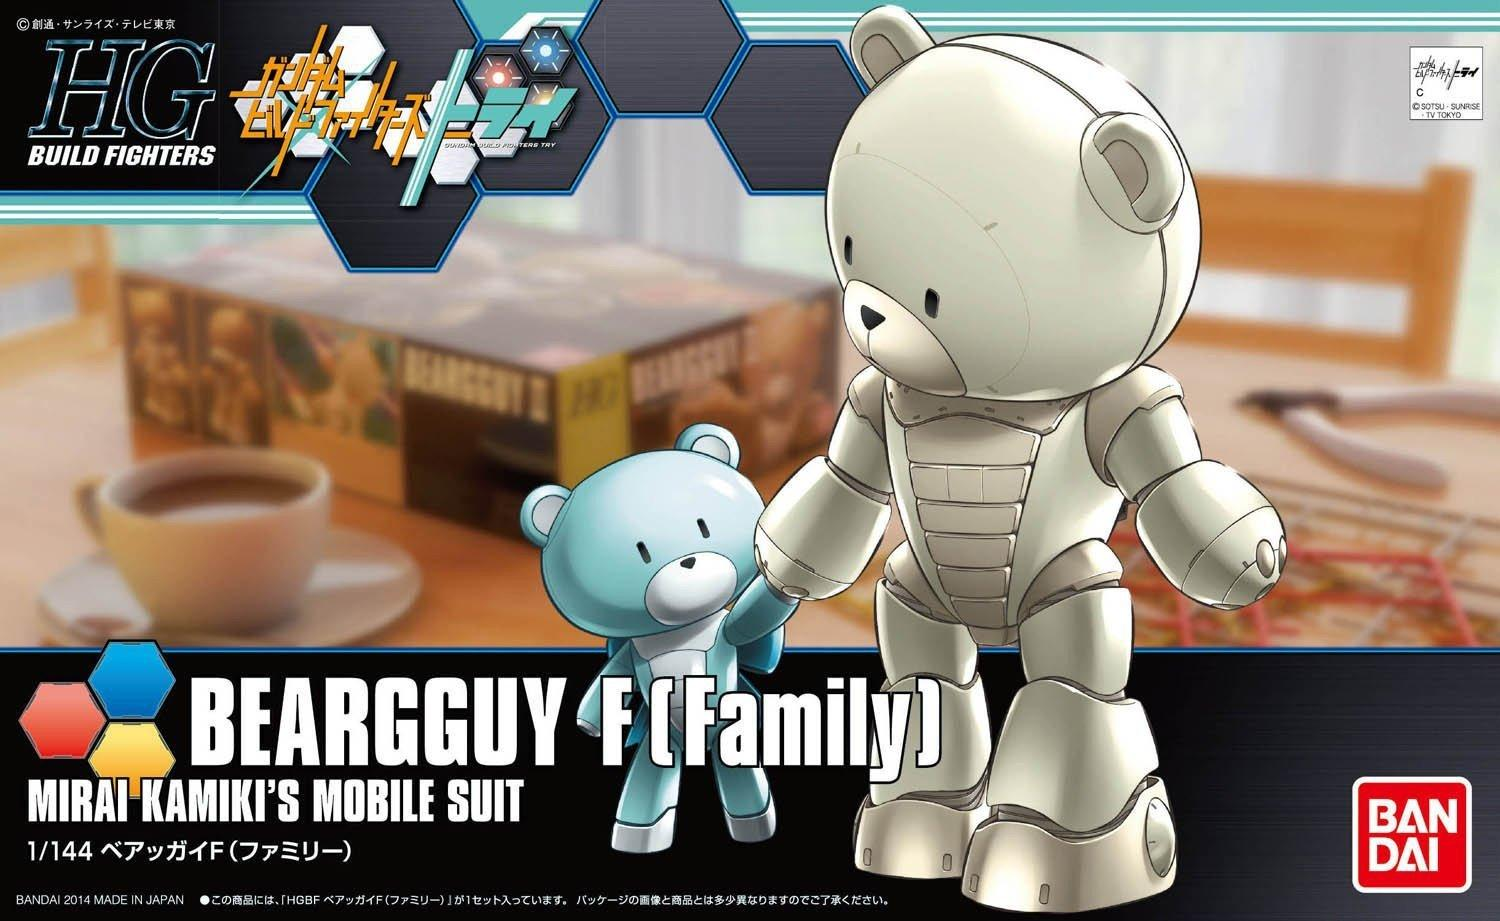 HGBF 1/144 Beargguy F Family